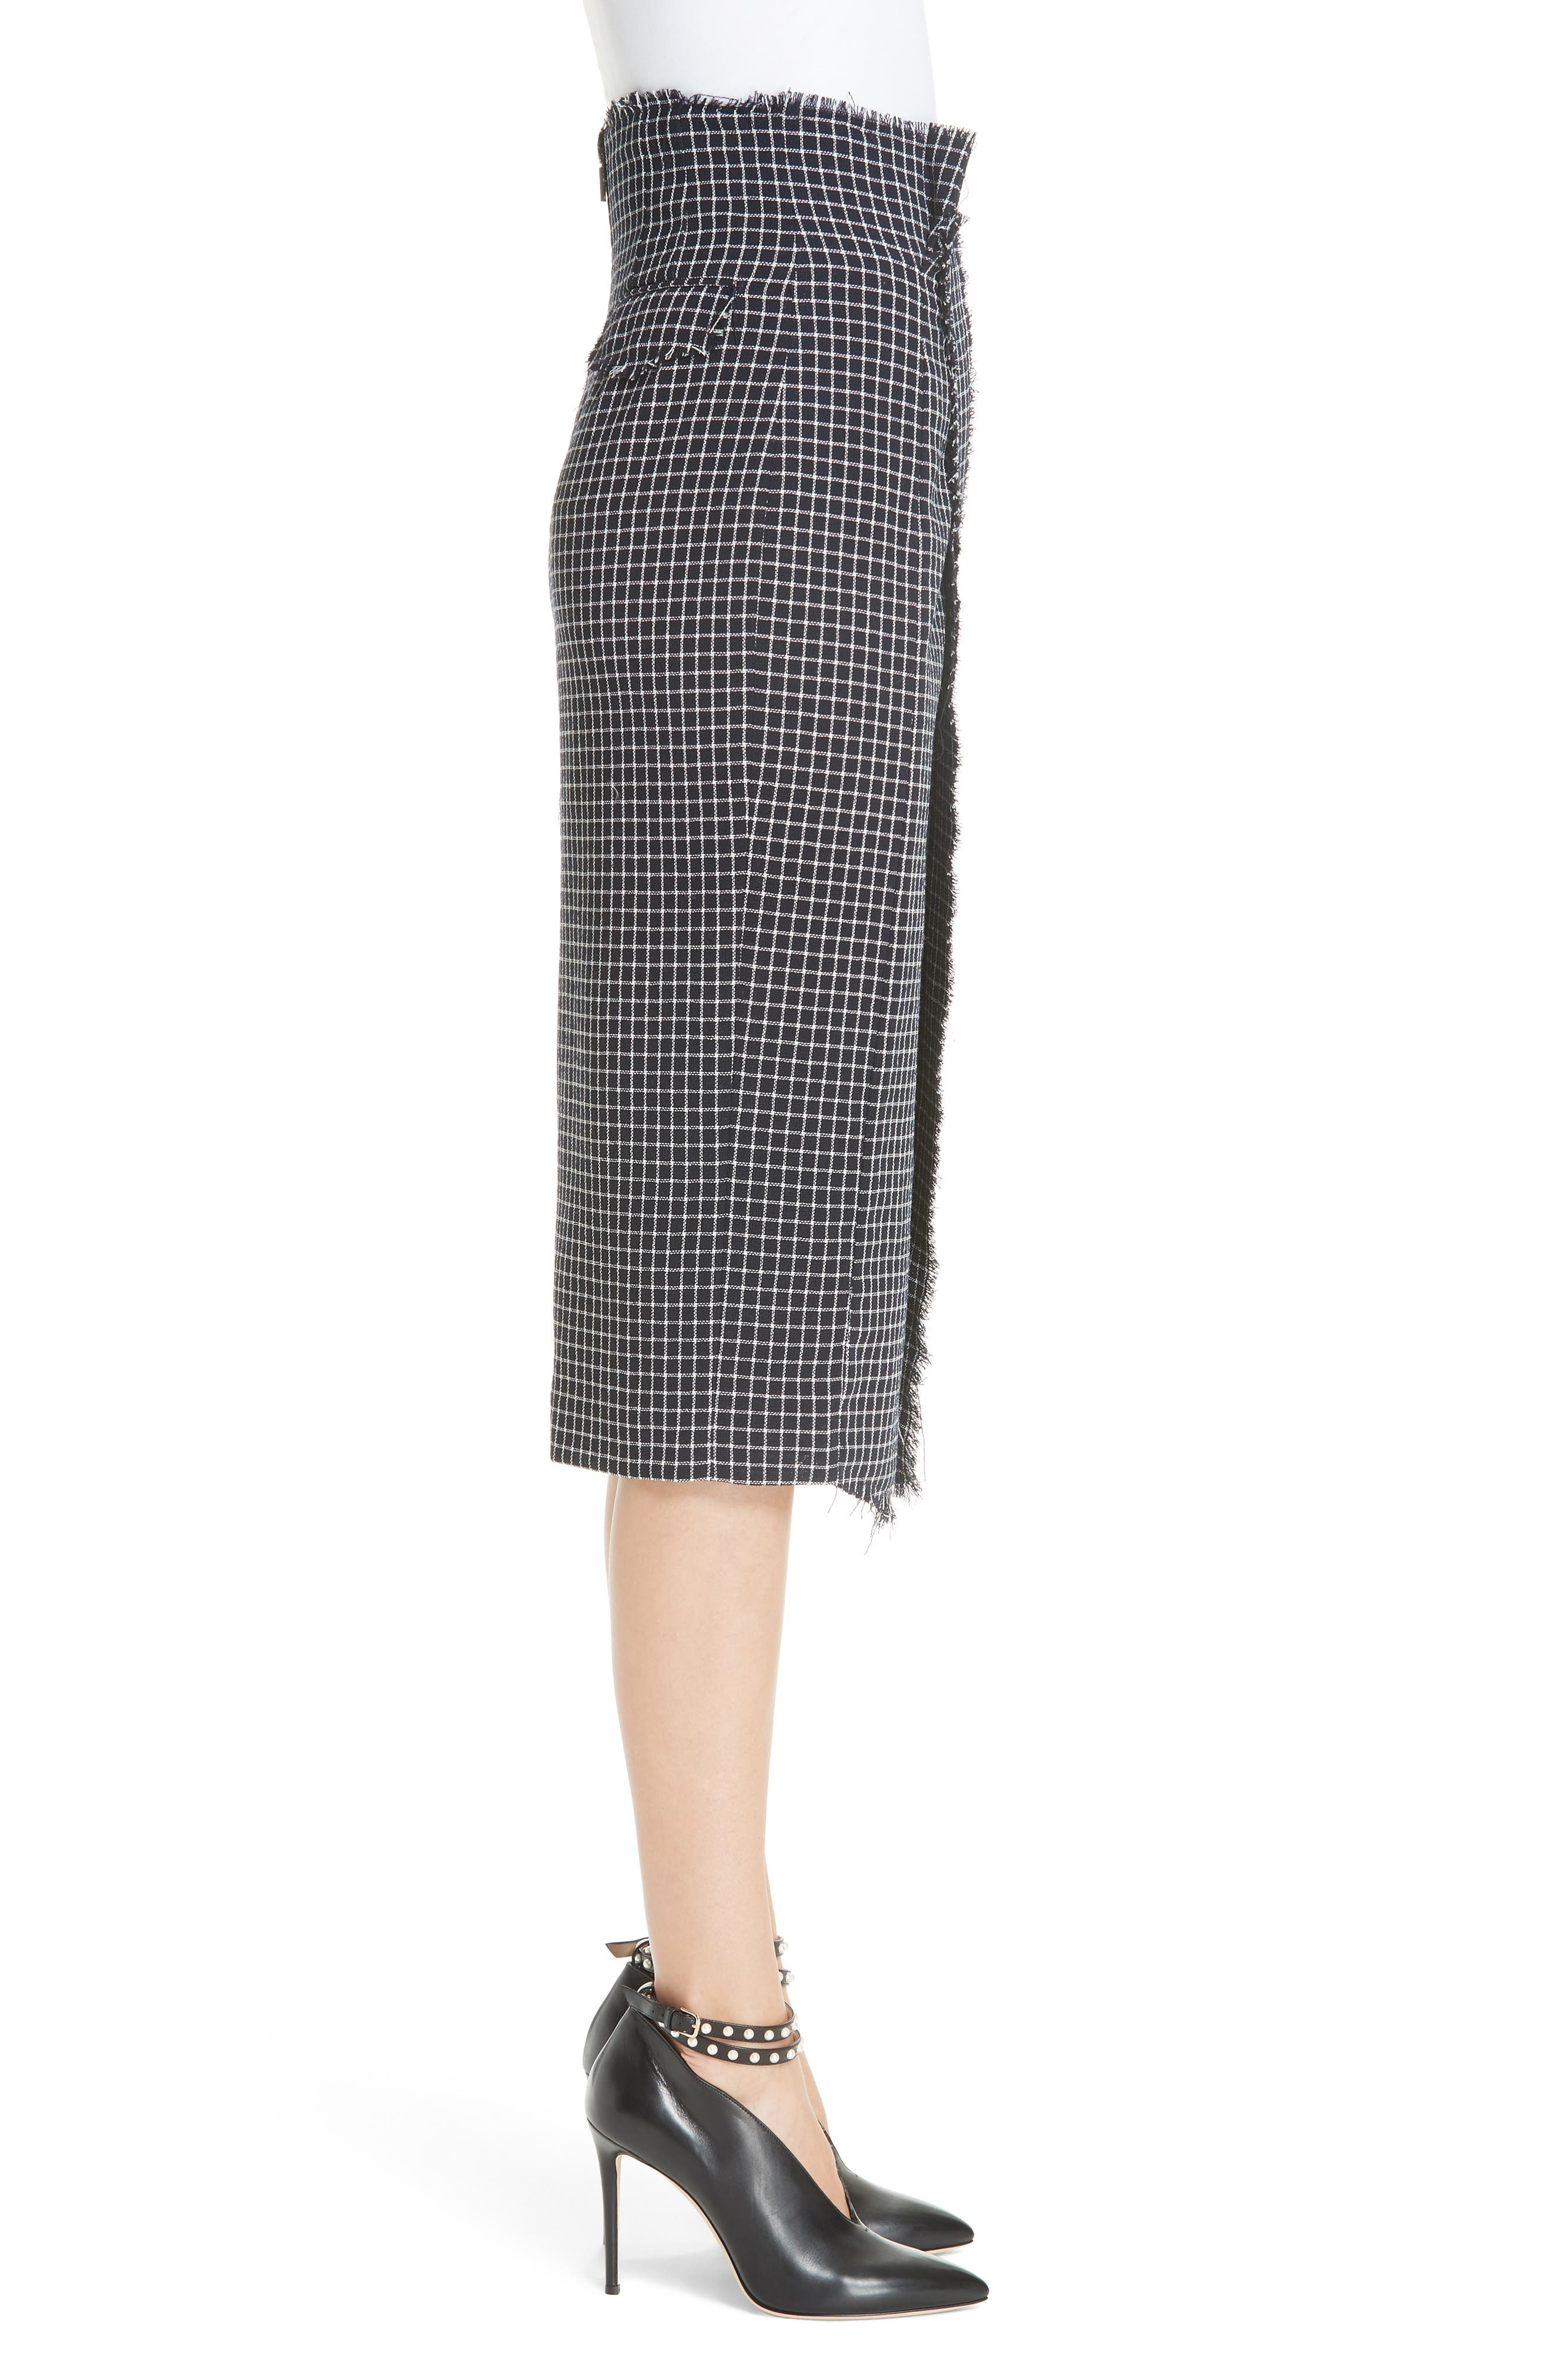 JASON WU COLLECTION,                             Wool Check Skirt,                             Alternate thumbnail 3, color,                             001